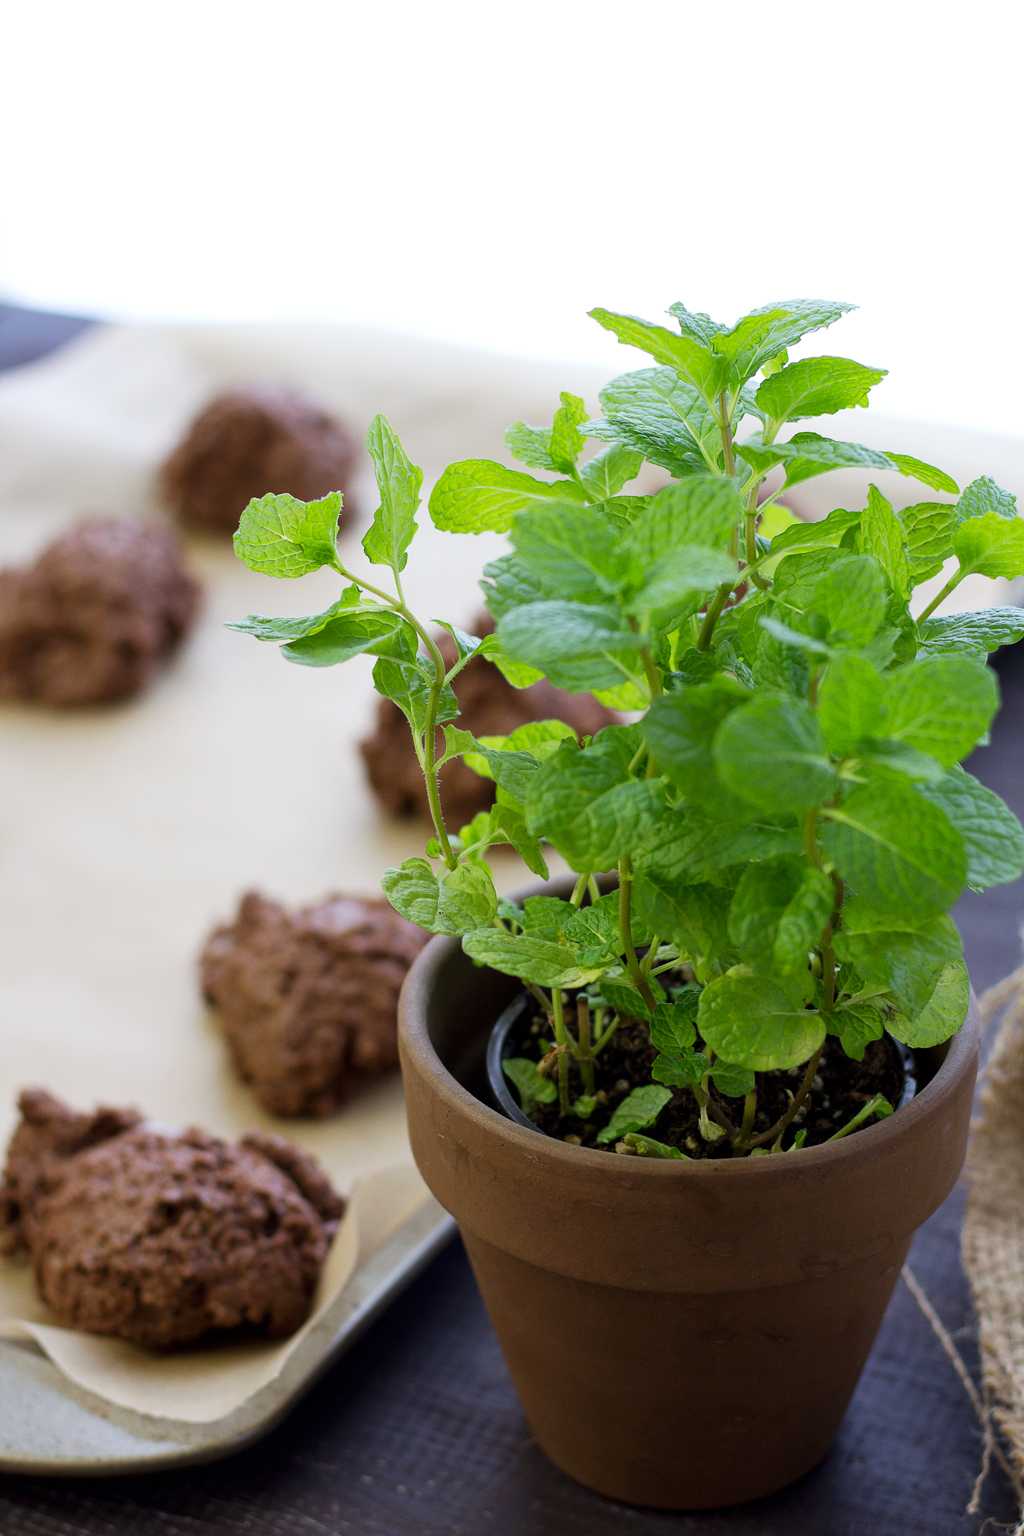 Organic mint plant in front of chocolate mint scones